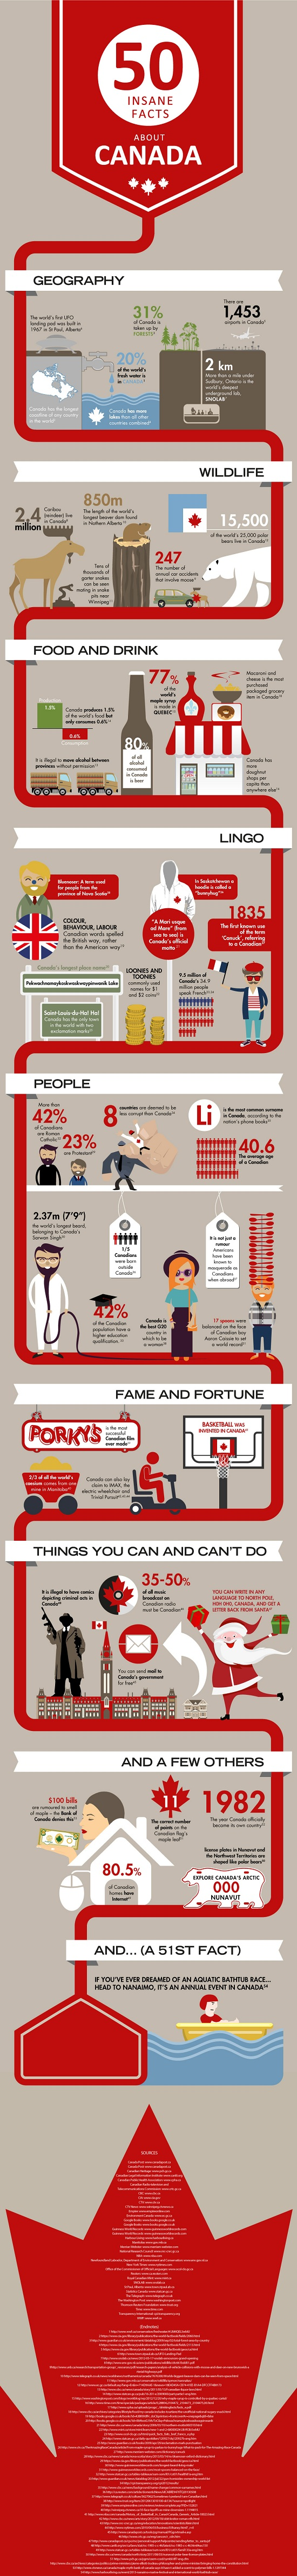 50-insane-facts-about-canada-infographic_52050620a6ce4